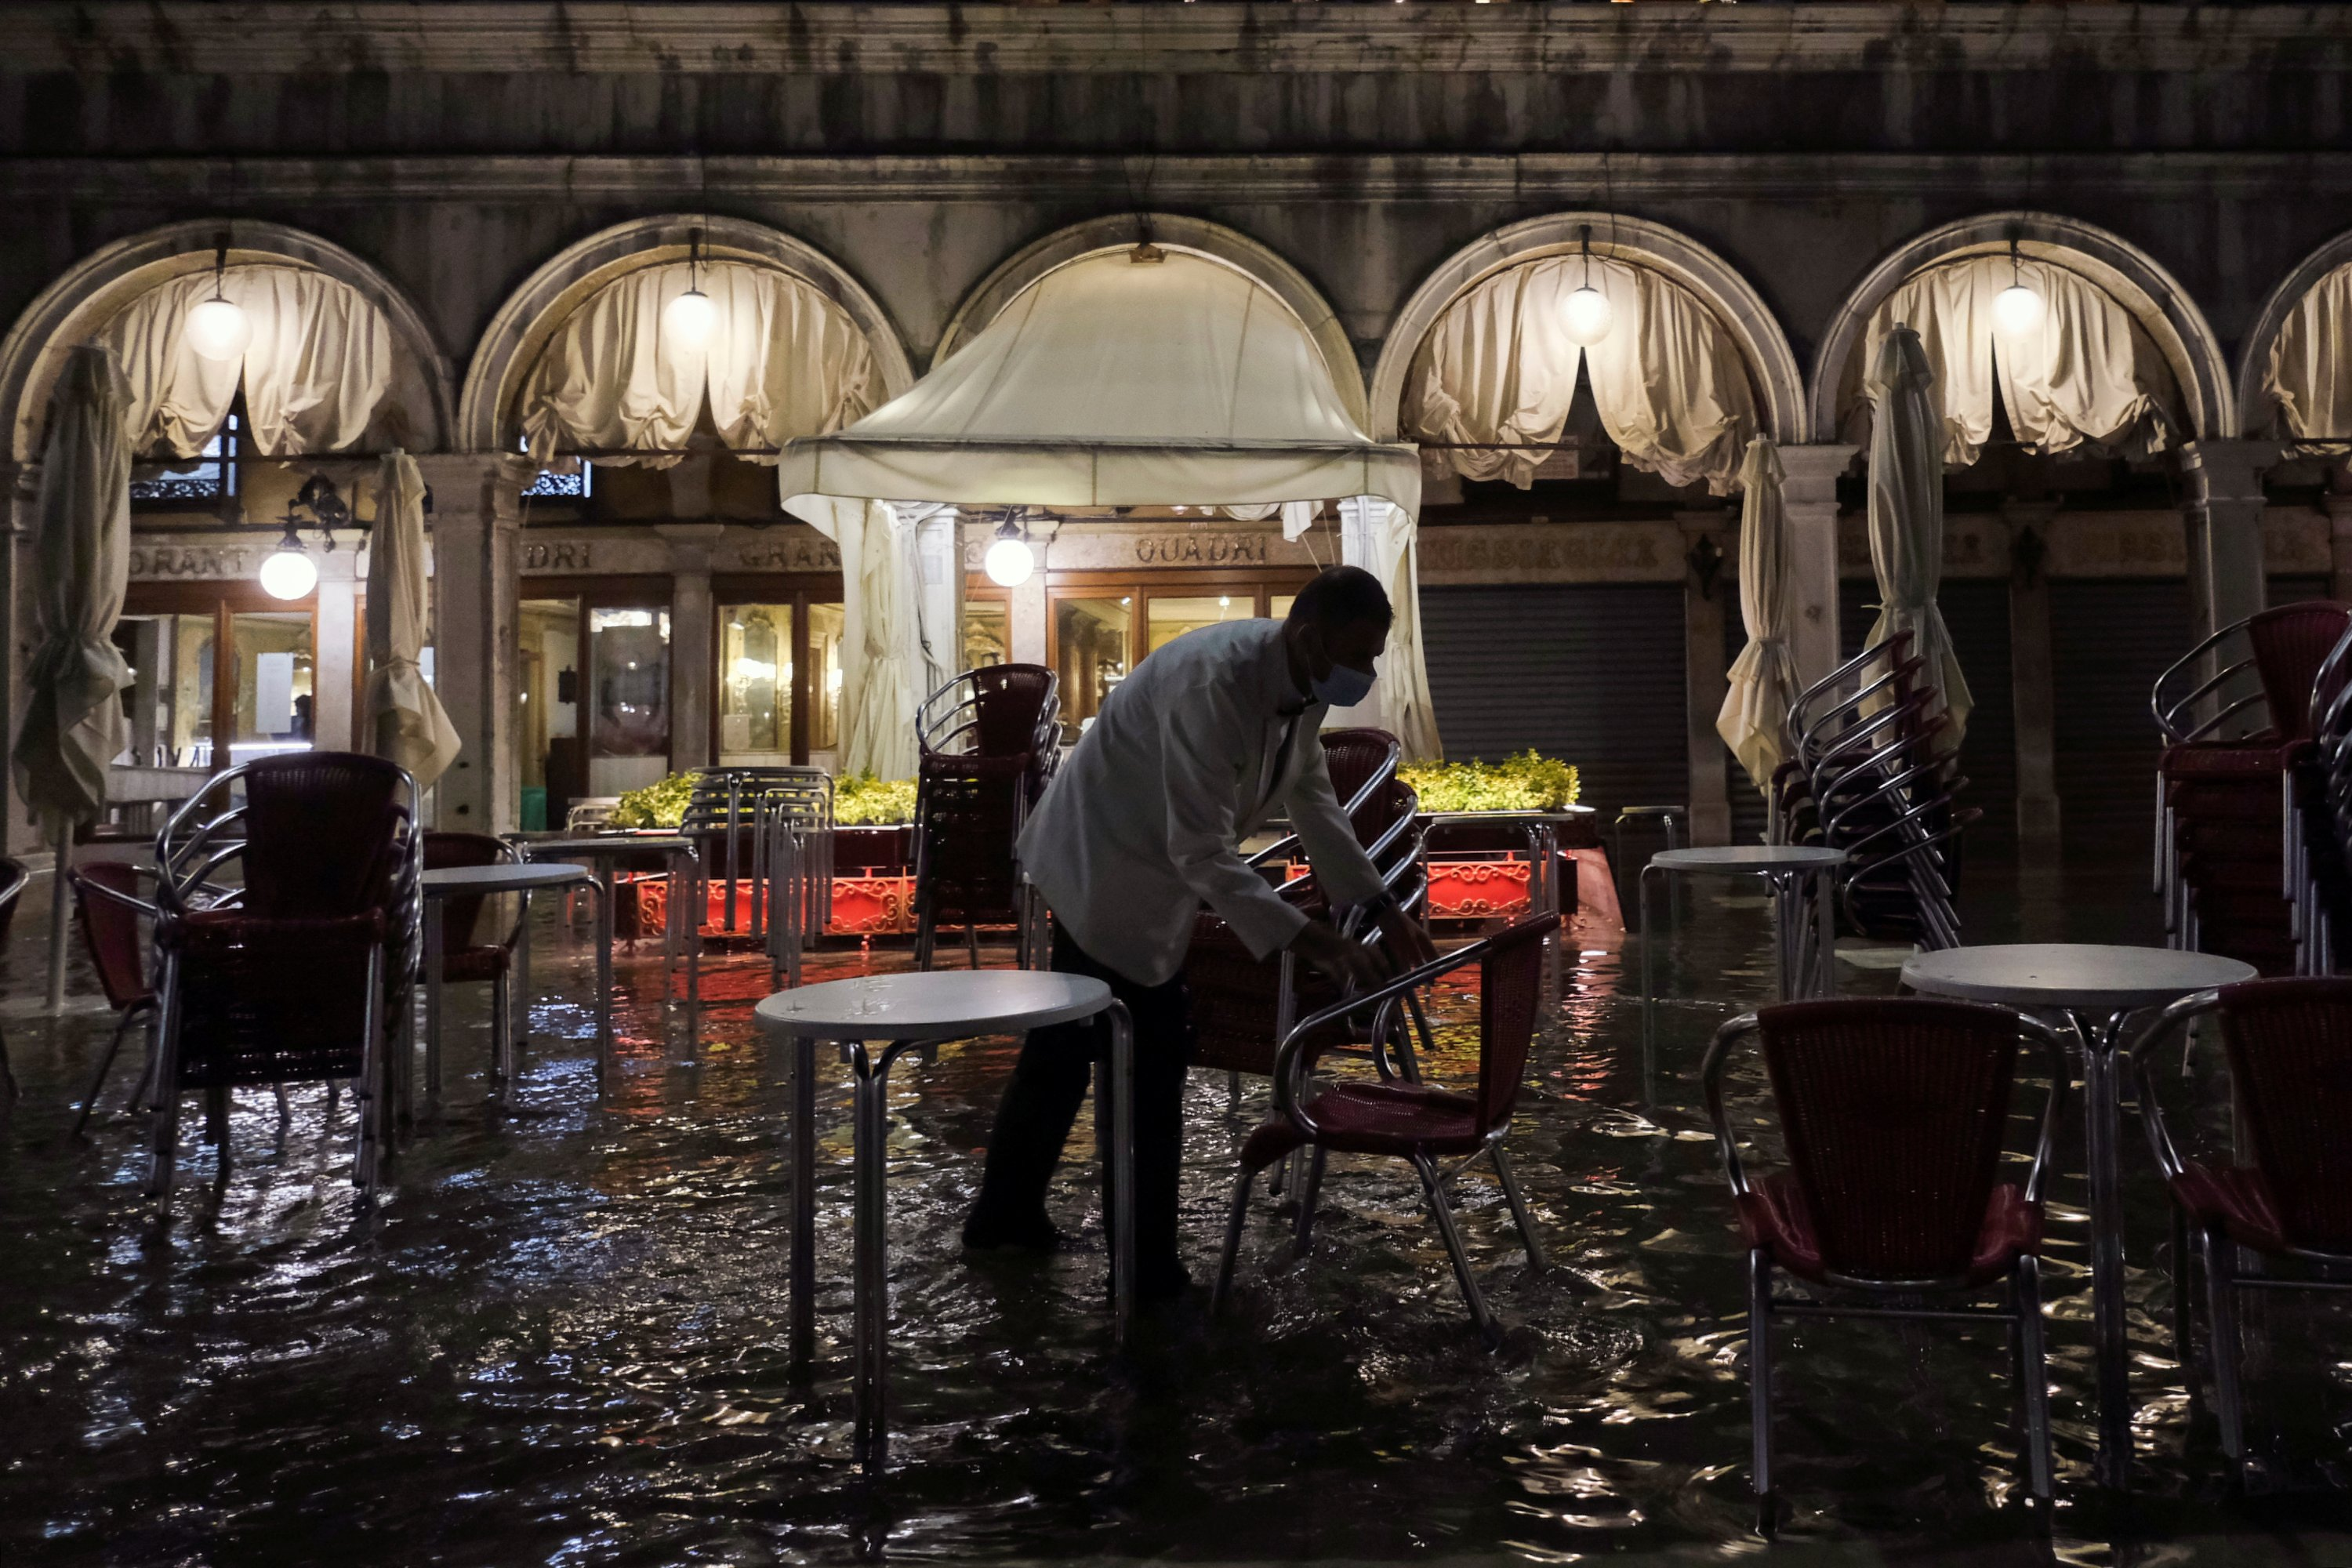 A worker closes a restaurant in a flooded St. Mark's Square after waters rose exceptionally high in Venice, Italy, Aug. 8, 2021. (Reuters Photo)